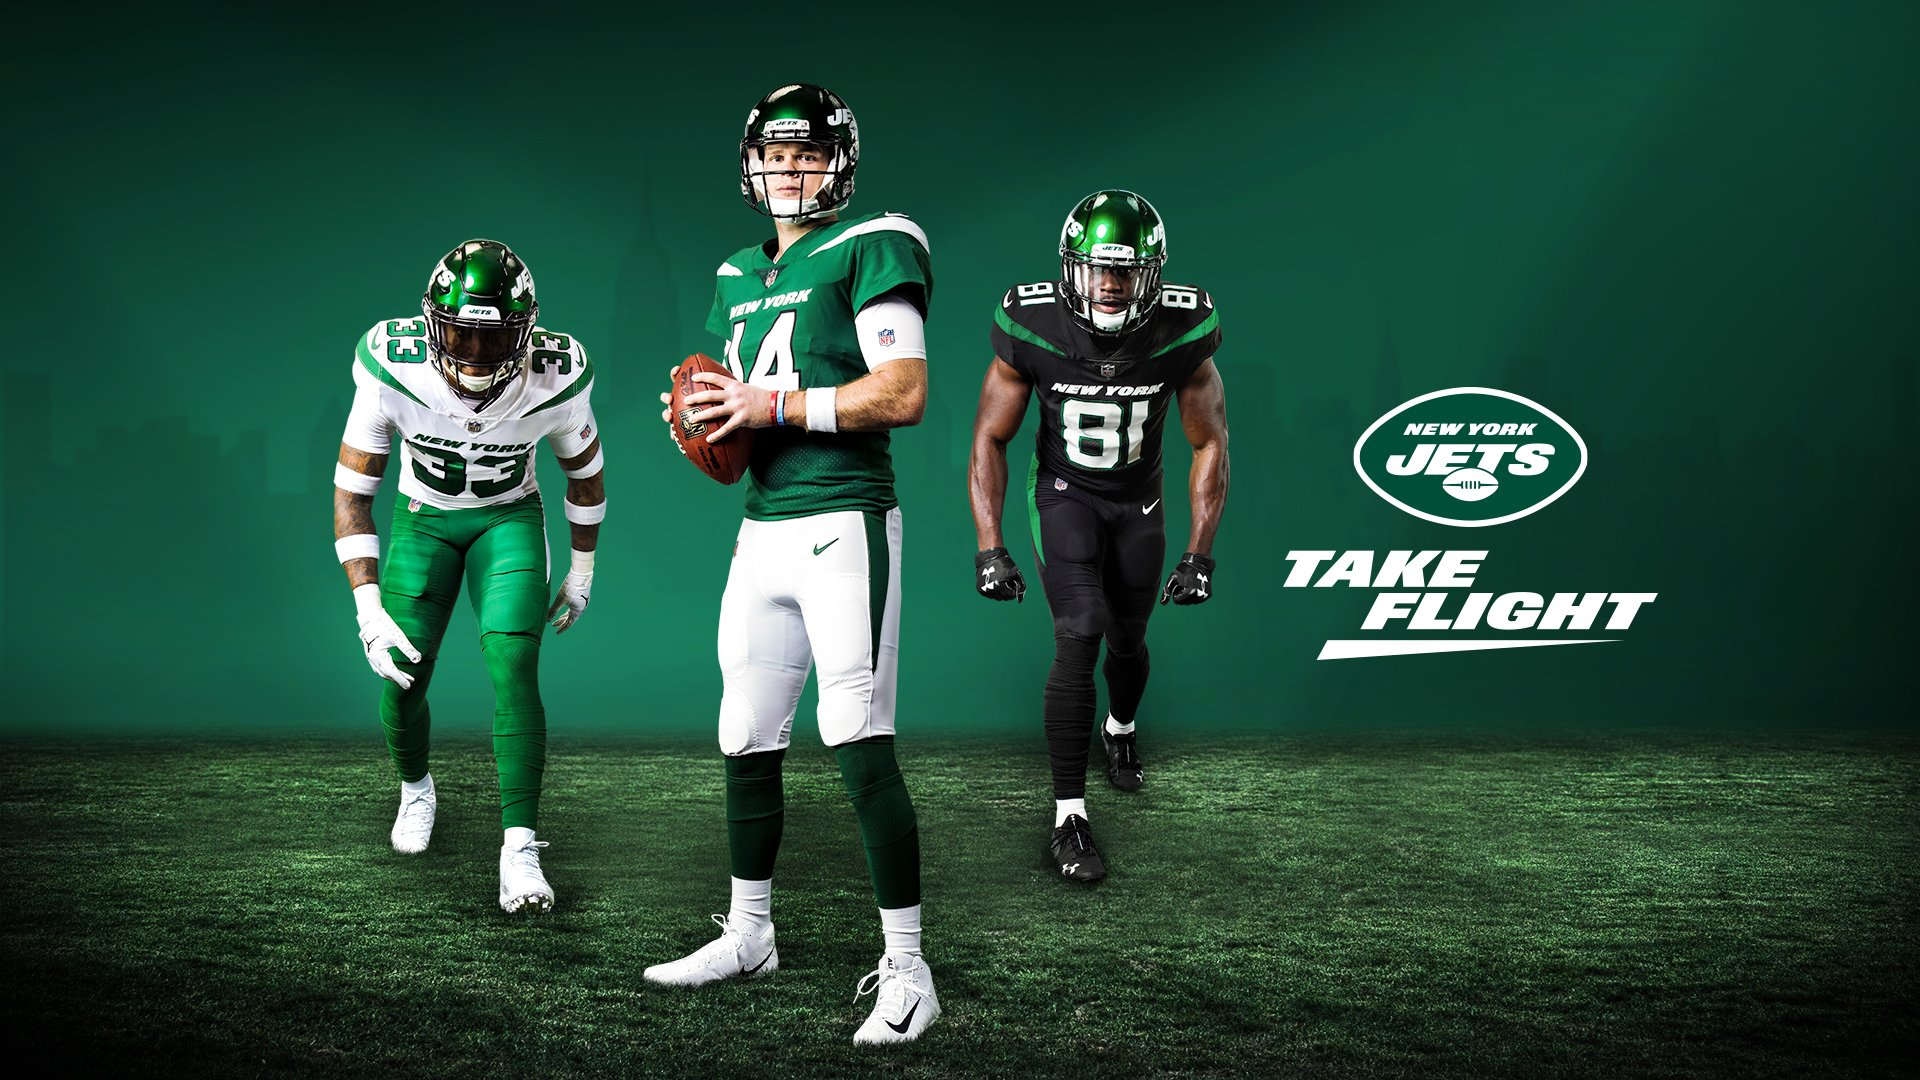 The New York Jets Release New Uniforms And Logo Wolf Sports